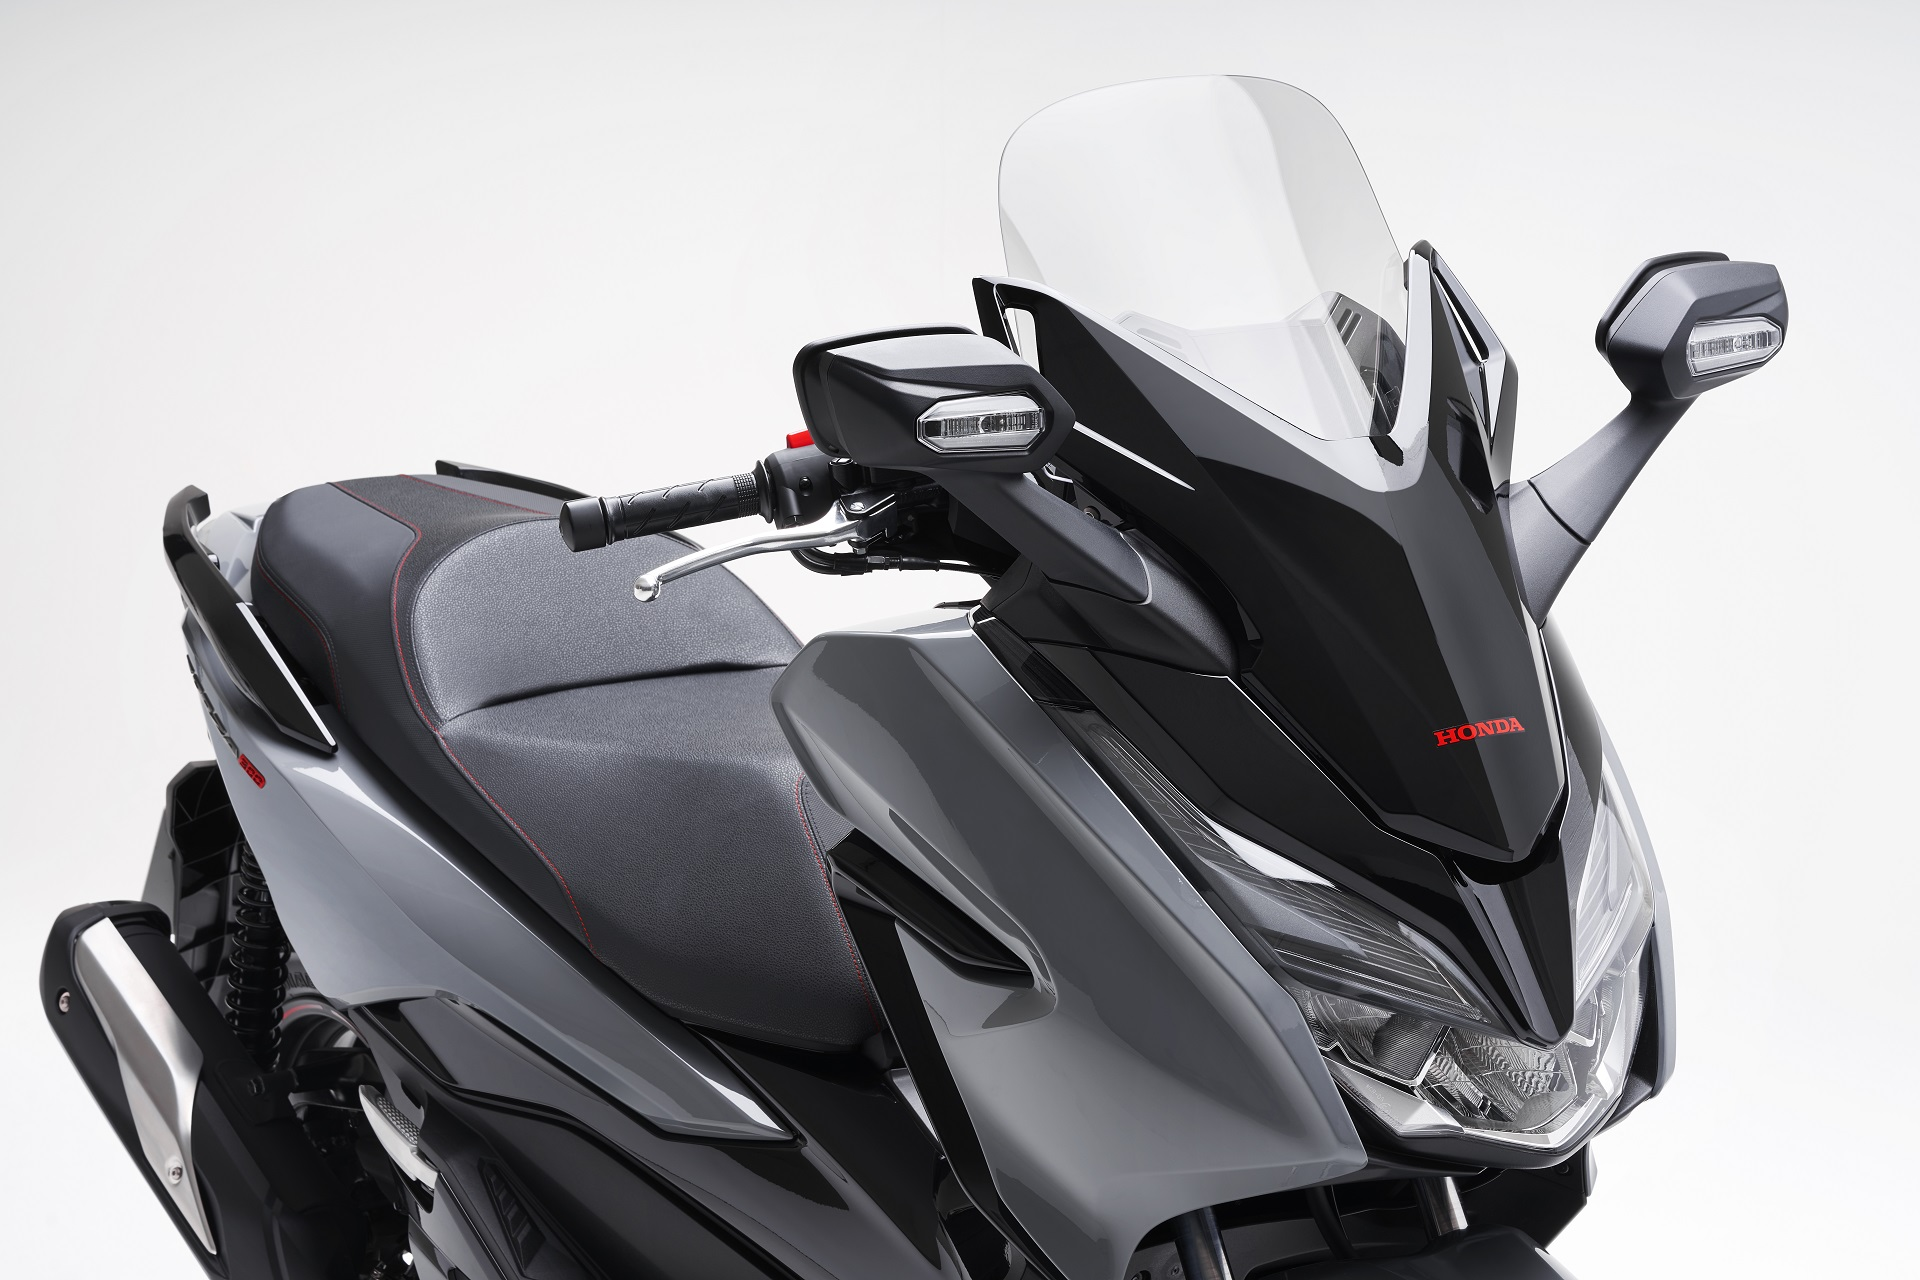 Honda NSS300 Forza Limited Edition ABS dobozzal 2020